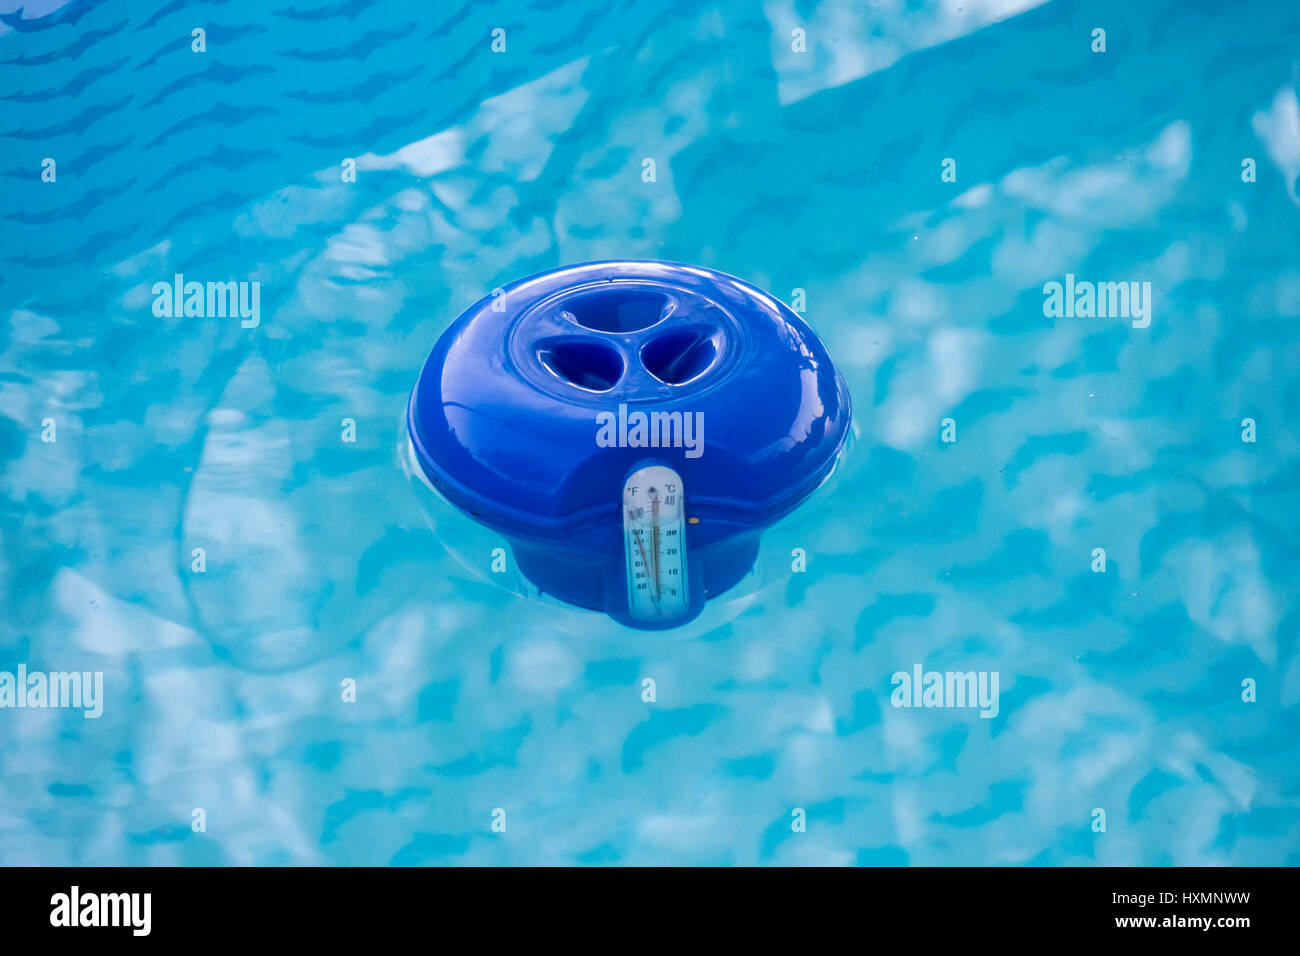 Chlor Pool Temperatur Blauen Pool Chlor Spender Im Wasser Stockfoto Bild 136909861 Alamy